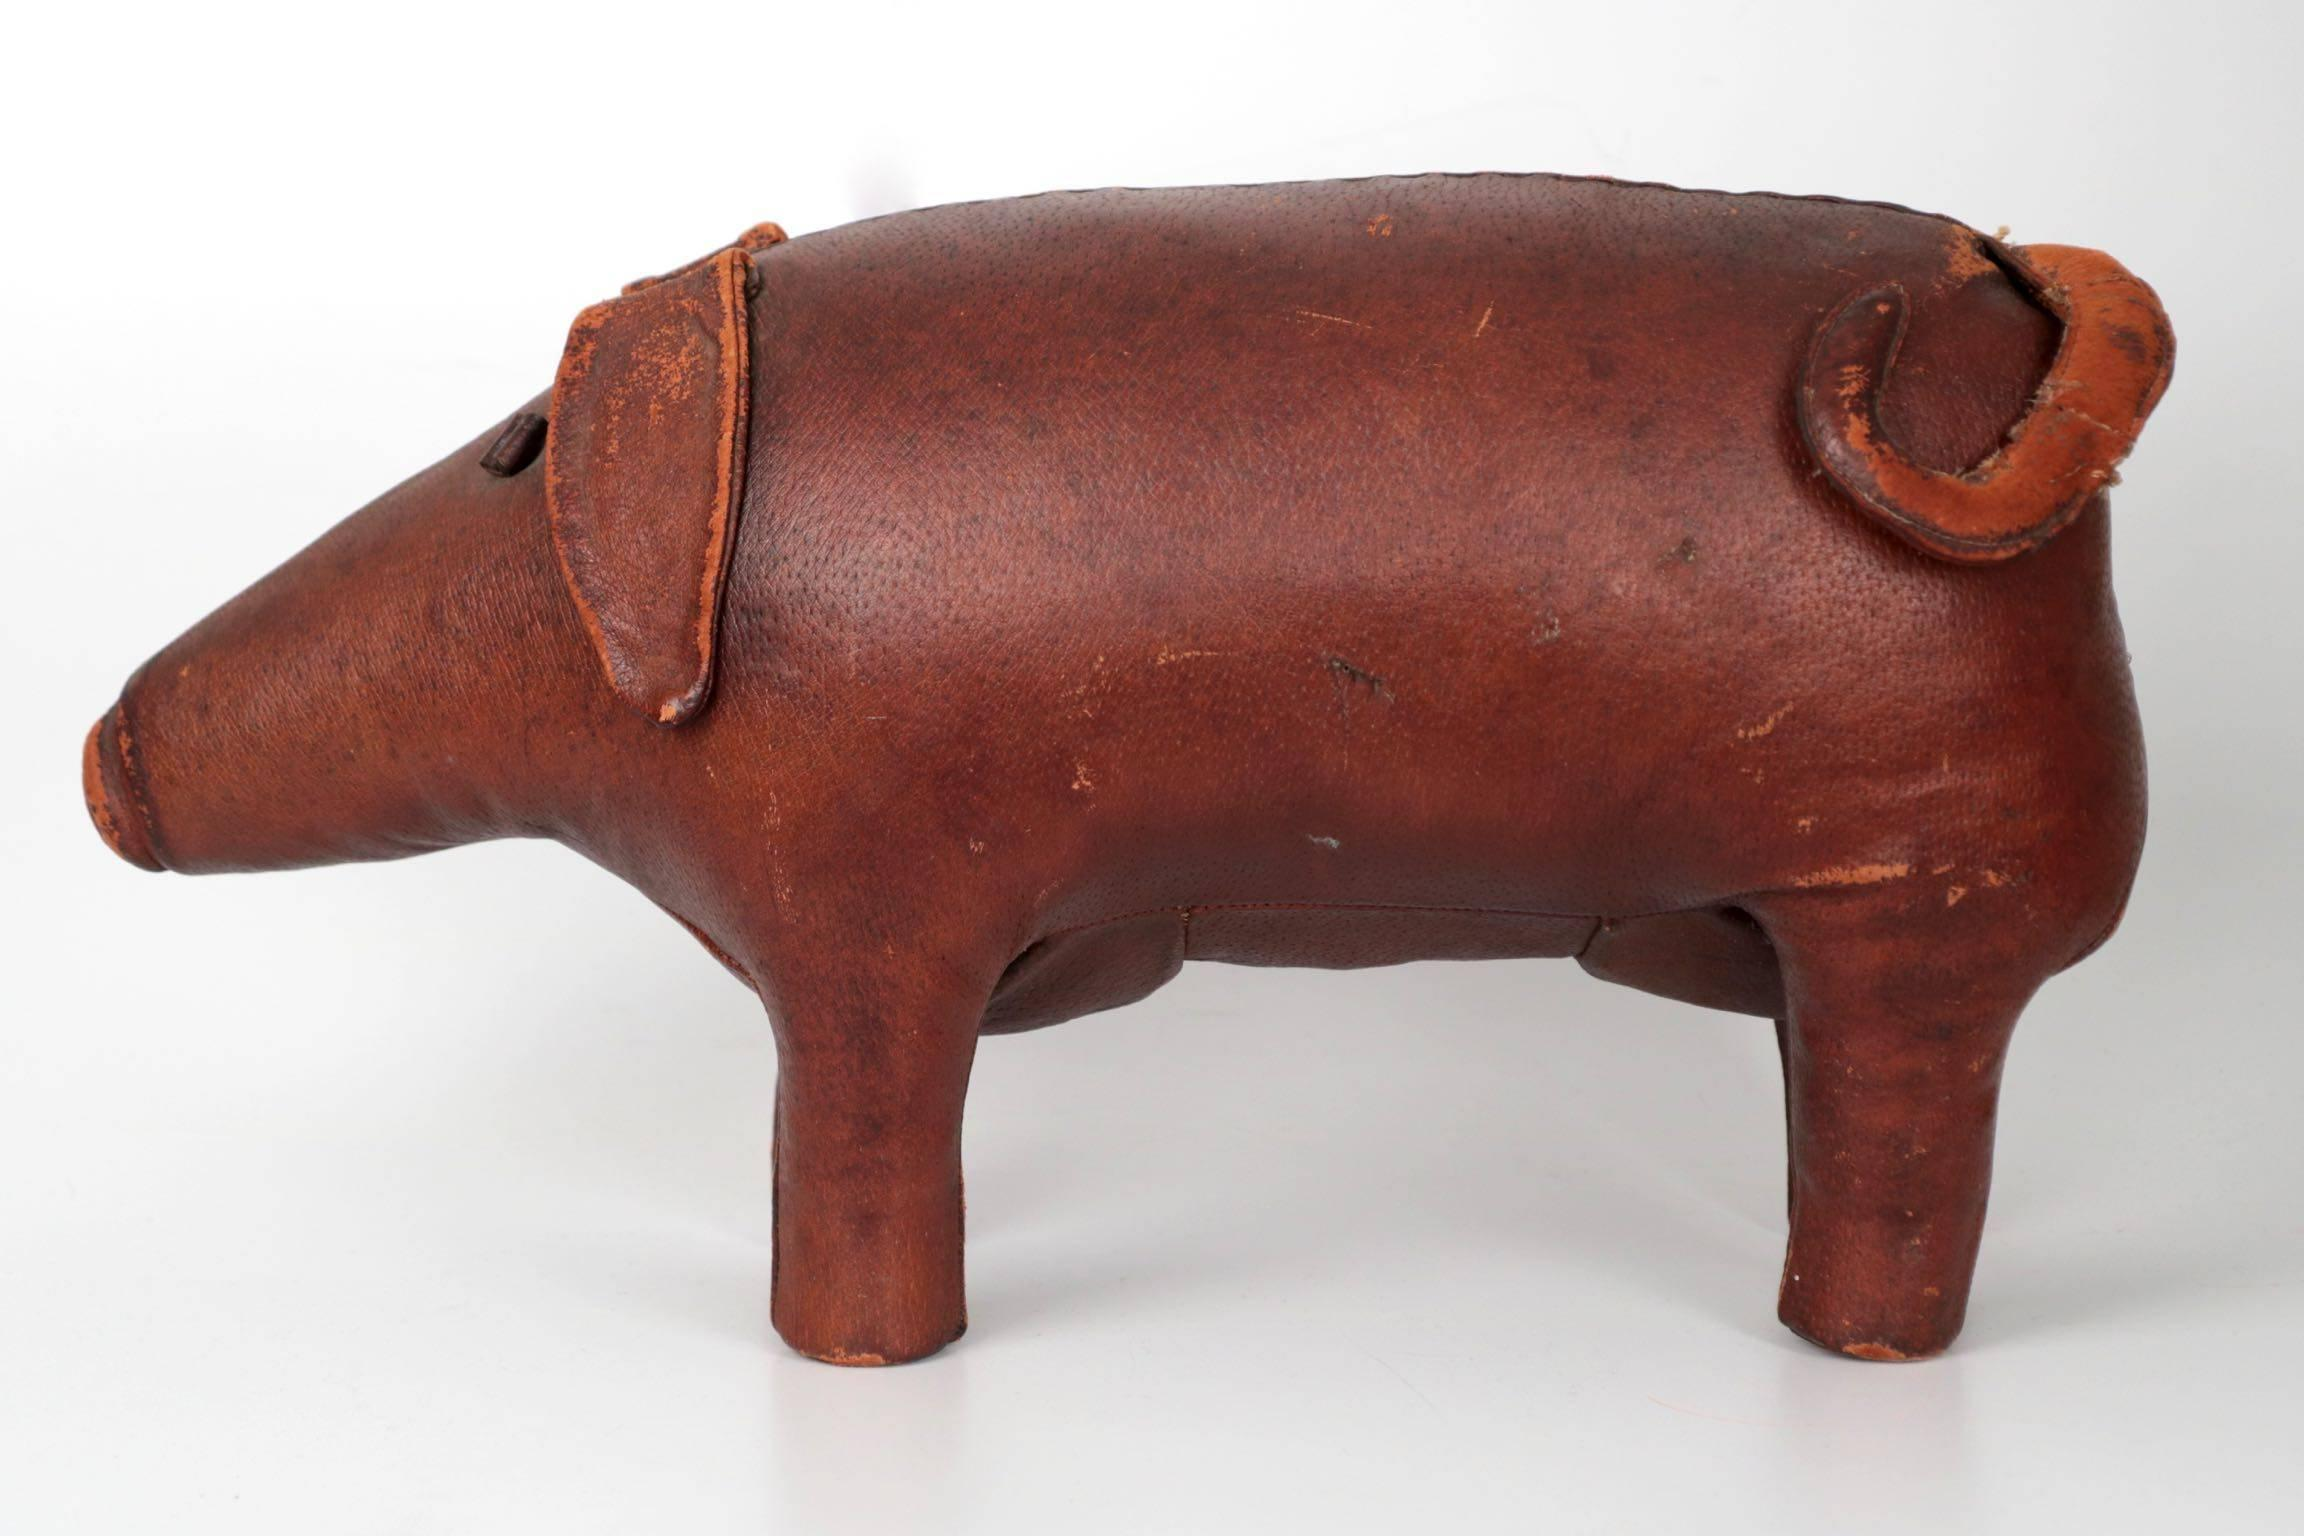 Merveilleux Stitched Leather Pig Footstool Ottoman By Dimitri Osmera For Abercrombie  And Fitch For Sale At 1stdibs